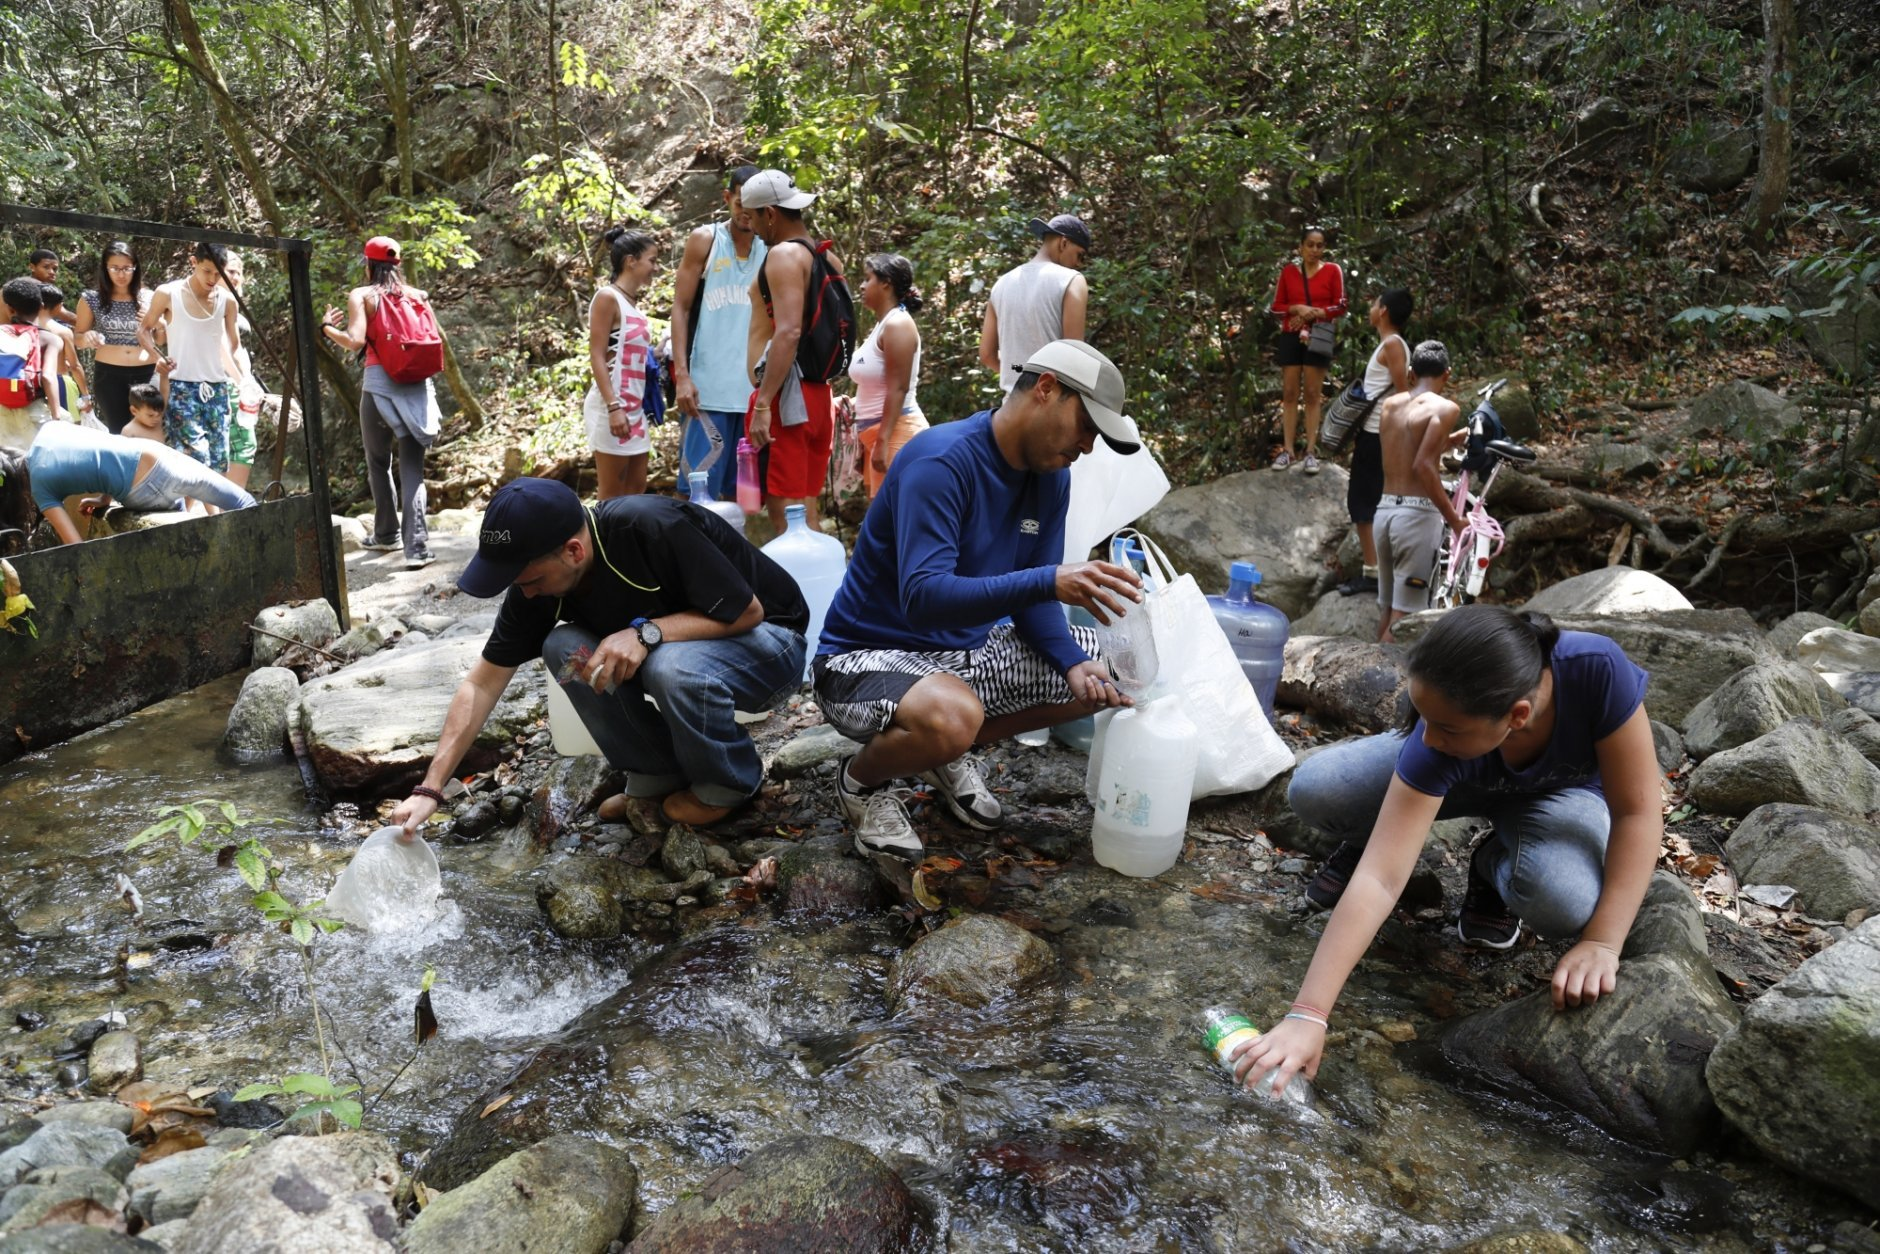 People collect water from a stream in Avila National Park during rolling blackouts, which affects the water pumps in people's homes and apartment buildings, in Caracas, Venezuela, Sunday, March 10, 2019. Venezuelans reached new levels of desperation Sunday as the country's worst blackouts took their toll, gathering in larger numbers than usual at springs in the mountains of Caracas to collect water and scrounging for scarce cash to pay for food in the few shops that were open.  (AP Photo/Eduardo Verdugo)